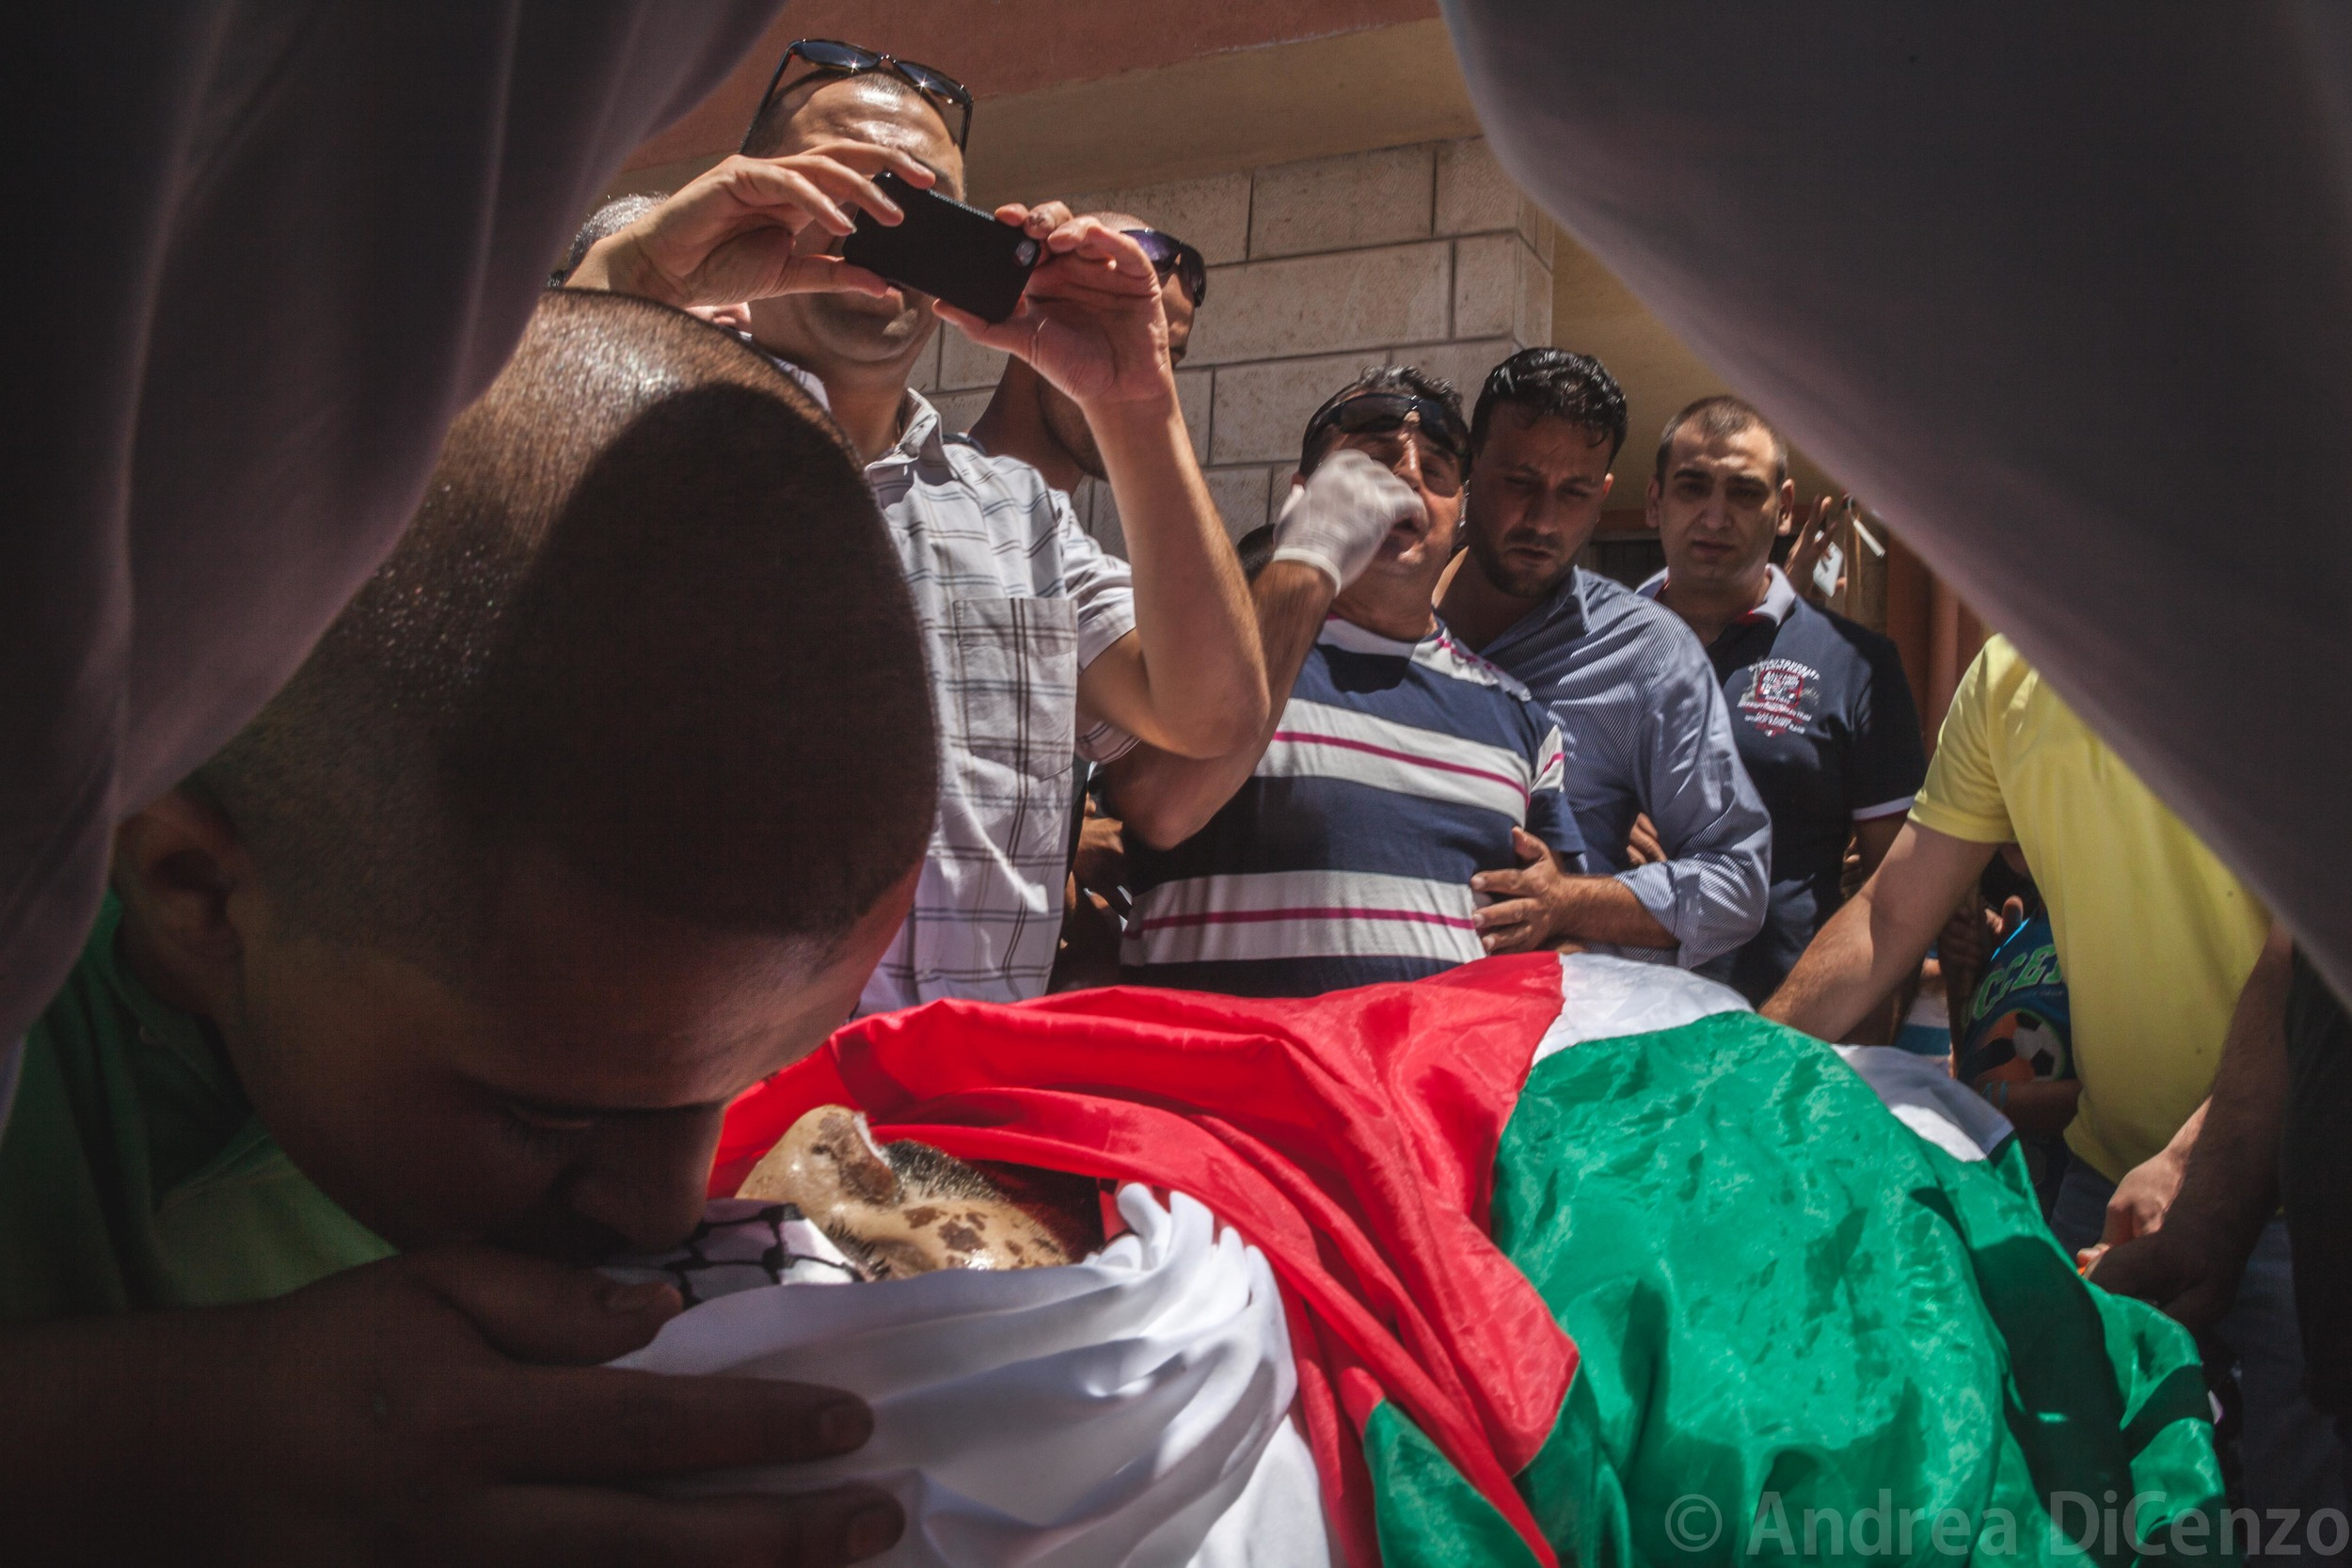 A stranger kisses the body of Mohammed during a funeral precession in East Jerusalem. Doctors and staff perform a traditional funeral outside Al-Makassed hospital for the funeral of the young man from Gaza. He arrived at 3am earlier in the day but didn't make it through the night.